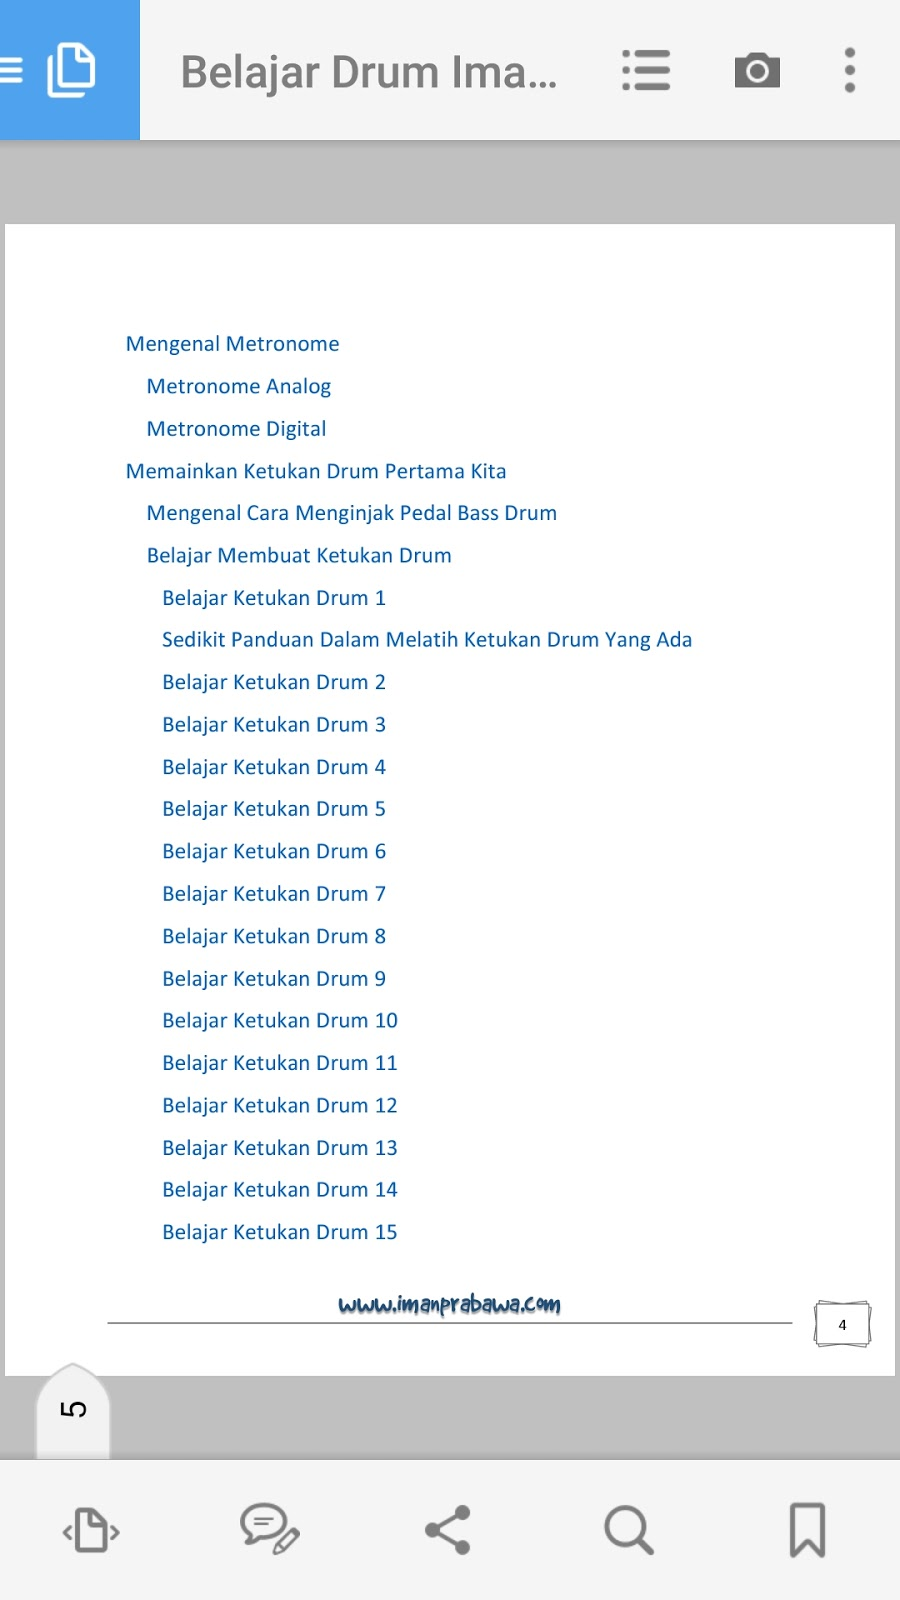 Ebook Iman Prabawa 4